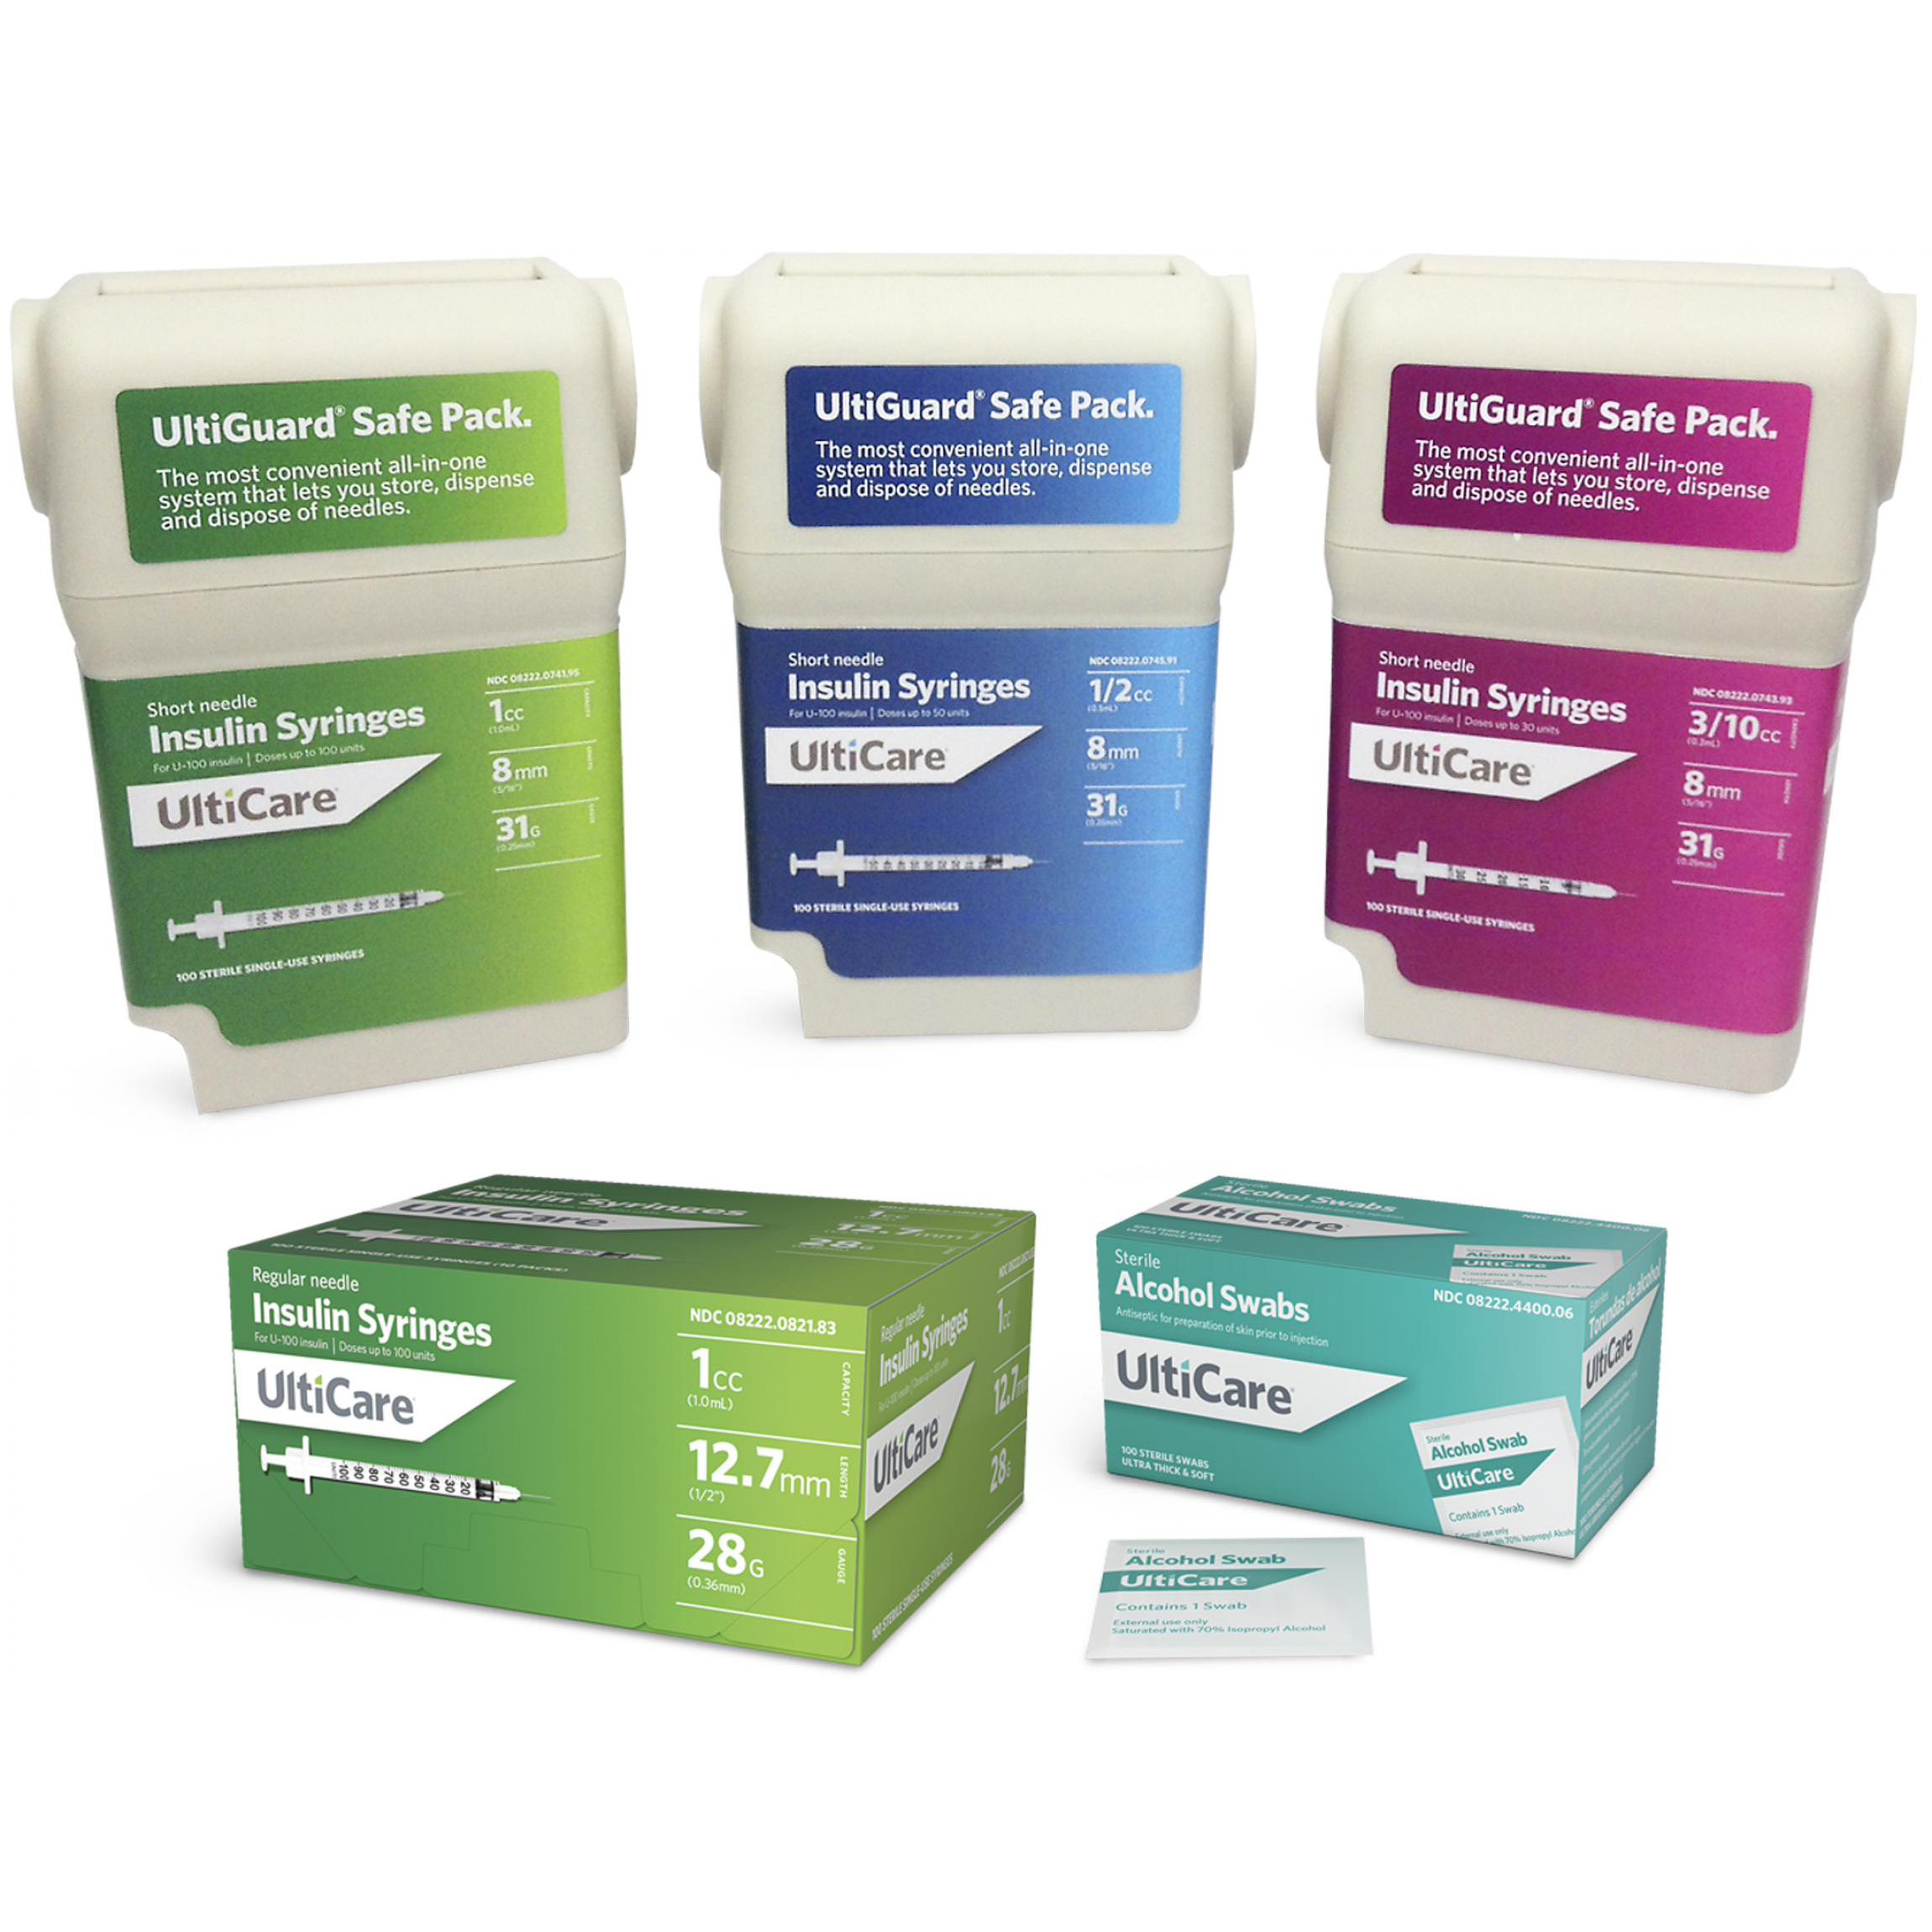 Examples of the packaging we produced for Untimed Inc., including sharps containers, product boxes and packets.